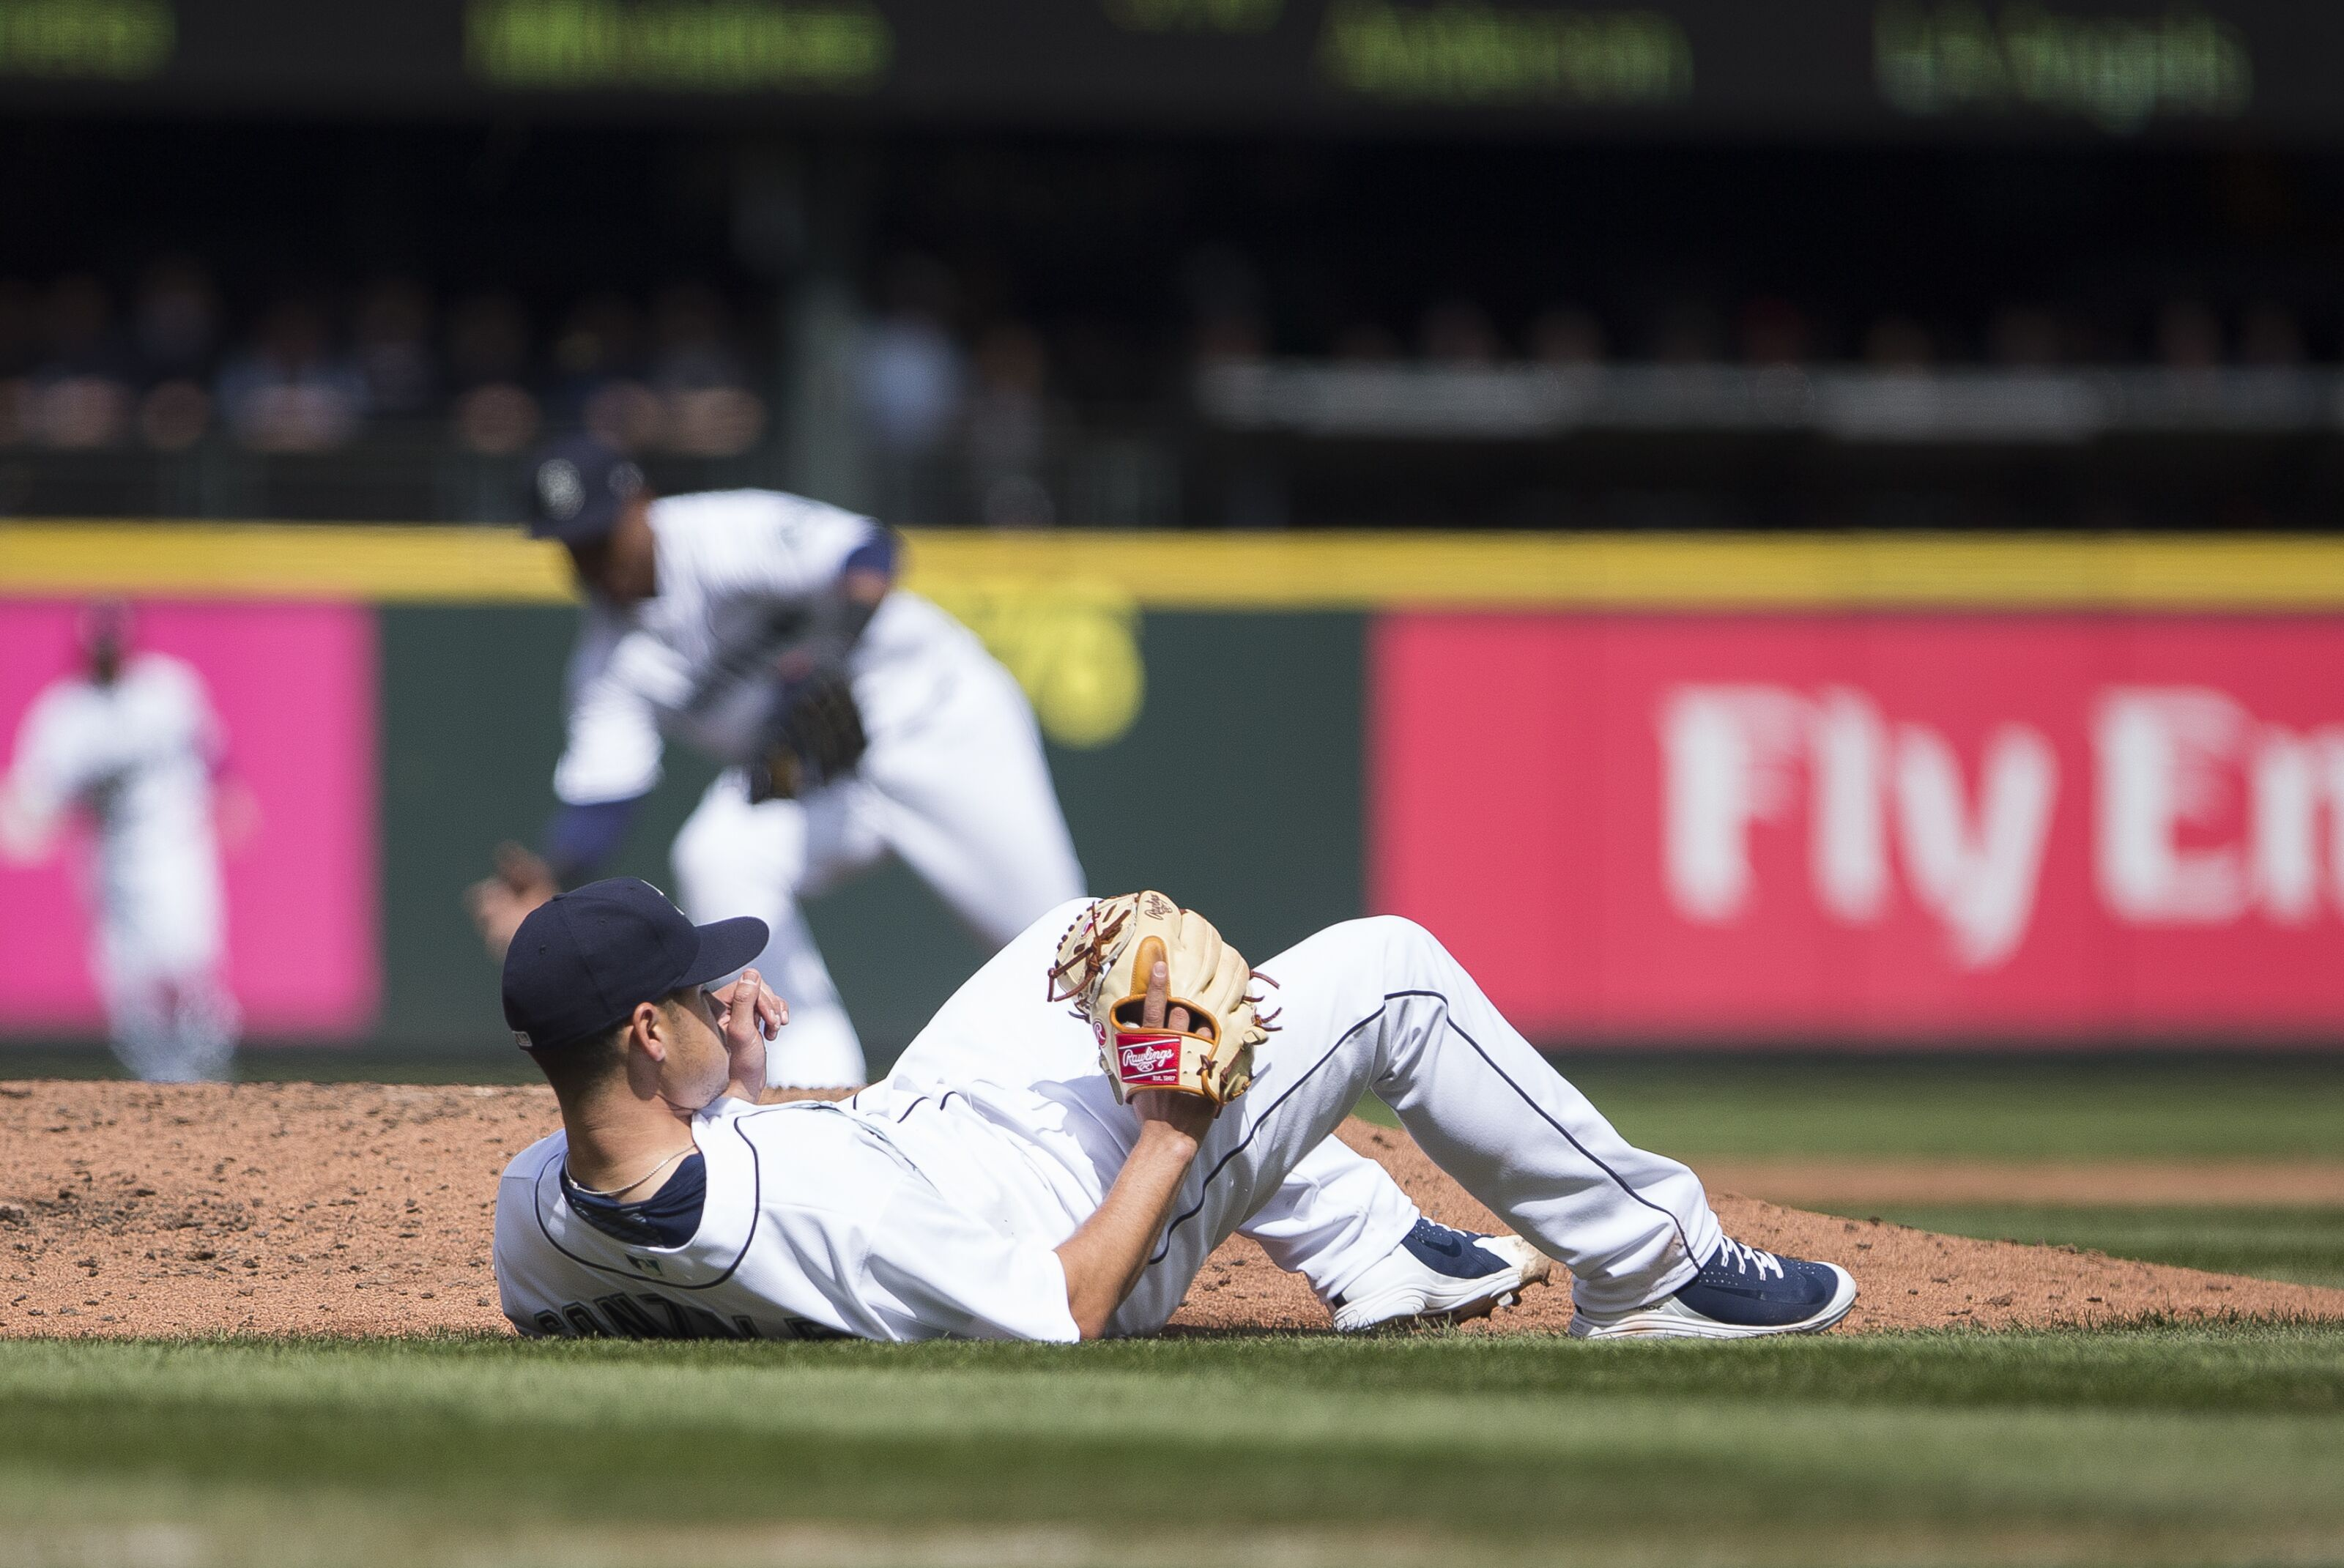 948828550-houston-astros-v-seattle-mariners.jpg